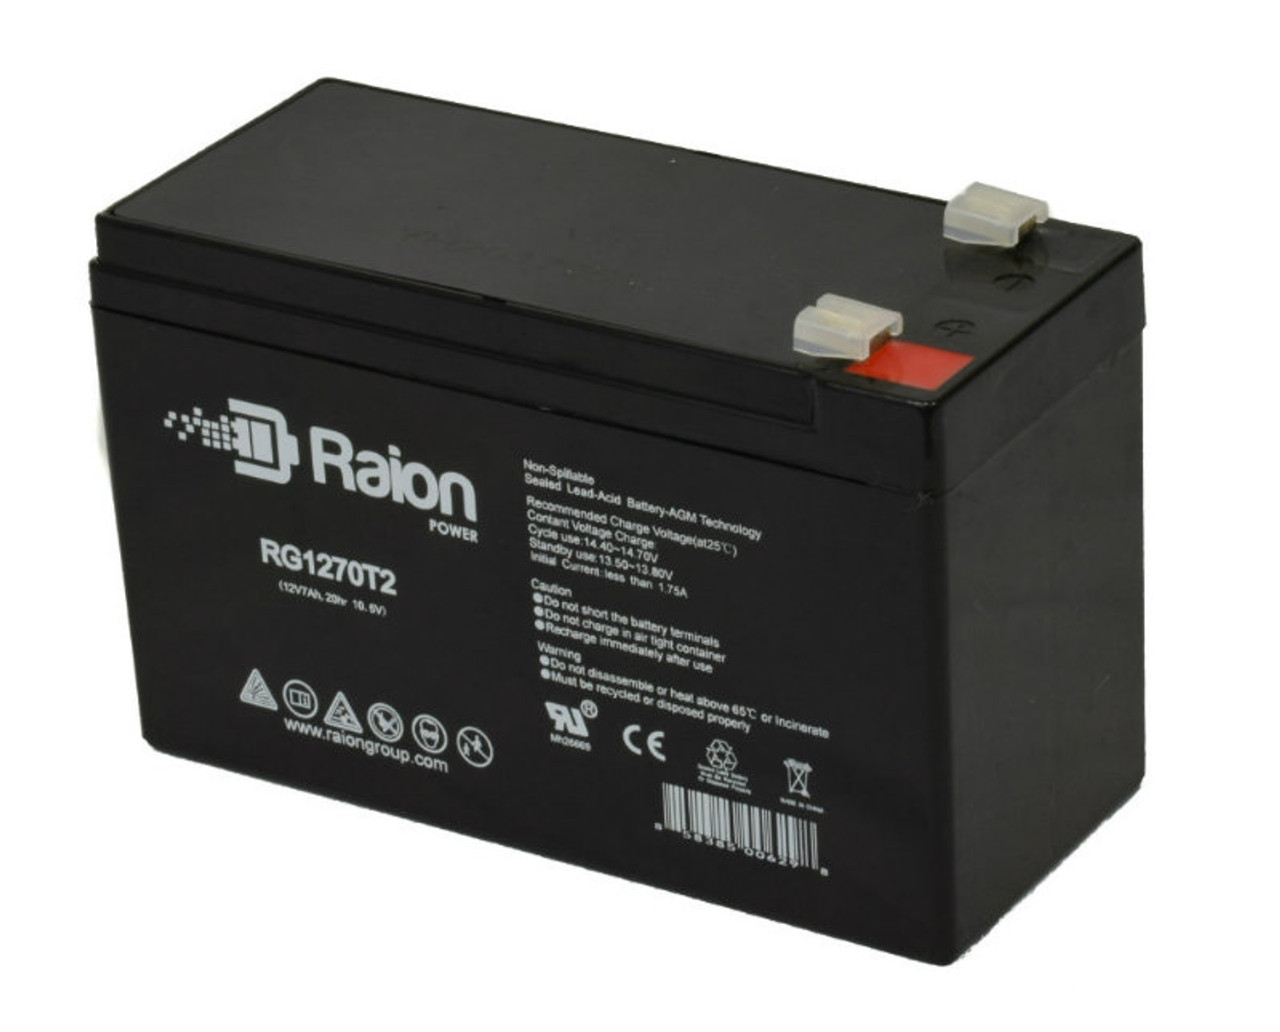 Raion Power RG1270T1 Replacement Battery for Guardian DG12-7F